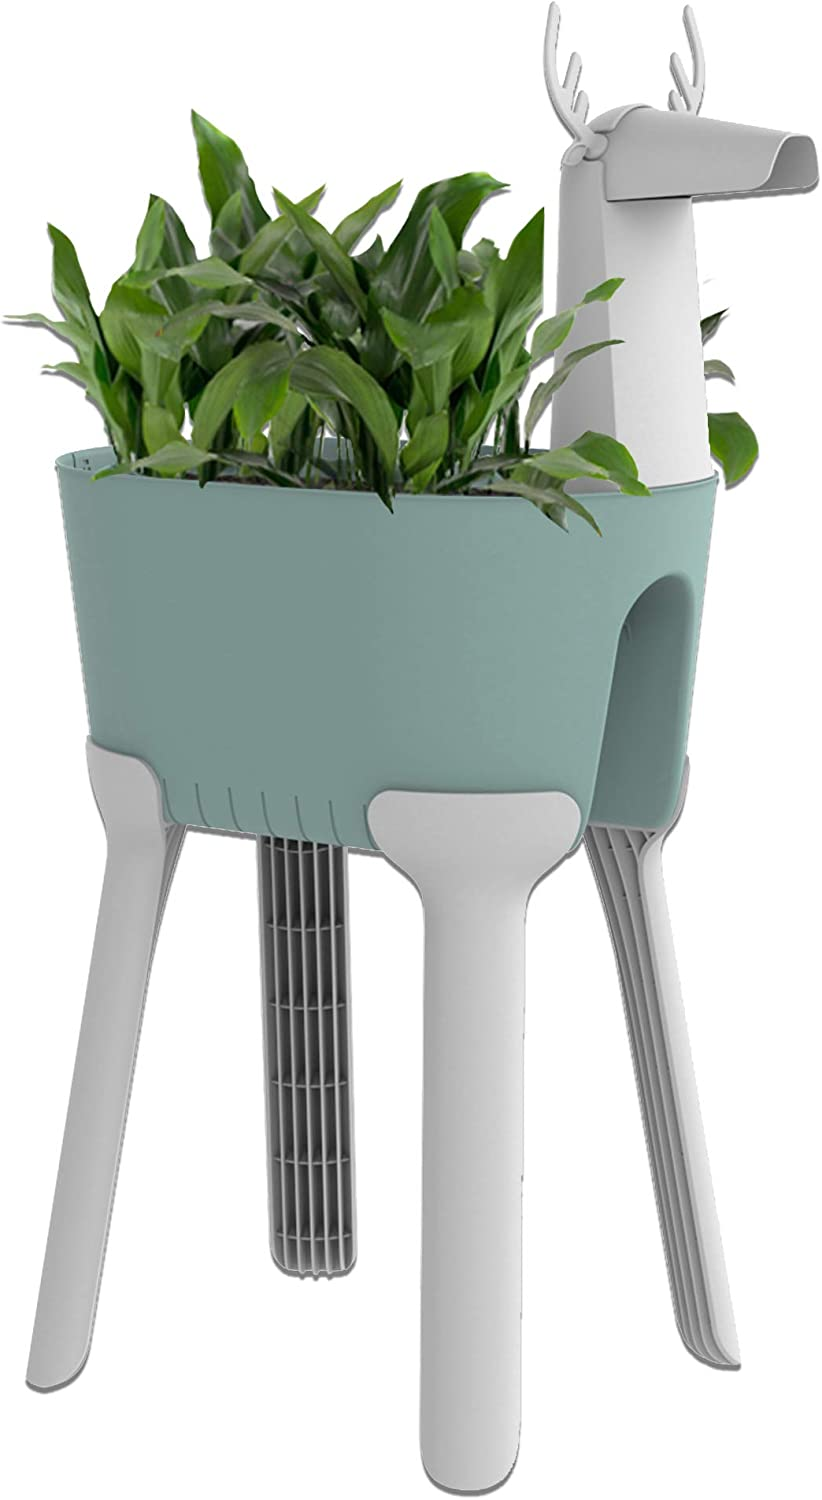 Sunzoo Rob Deer Decoration Planter: 2 in 1 Teal Animal Rail Planter, Indoor Outdoor, Patio, Balcony, Urban Garden Planters, Easy Assembly, Drainage